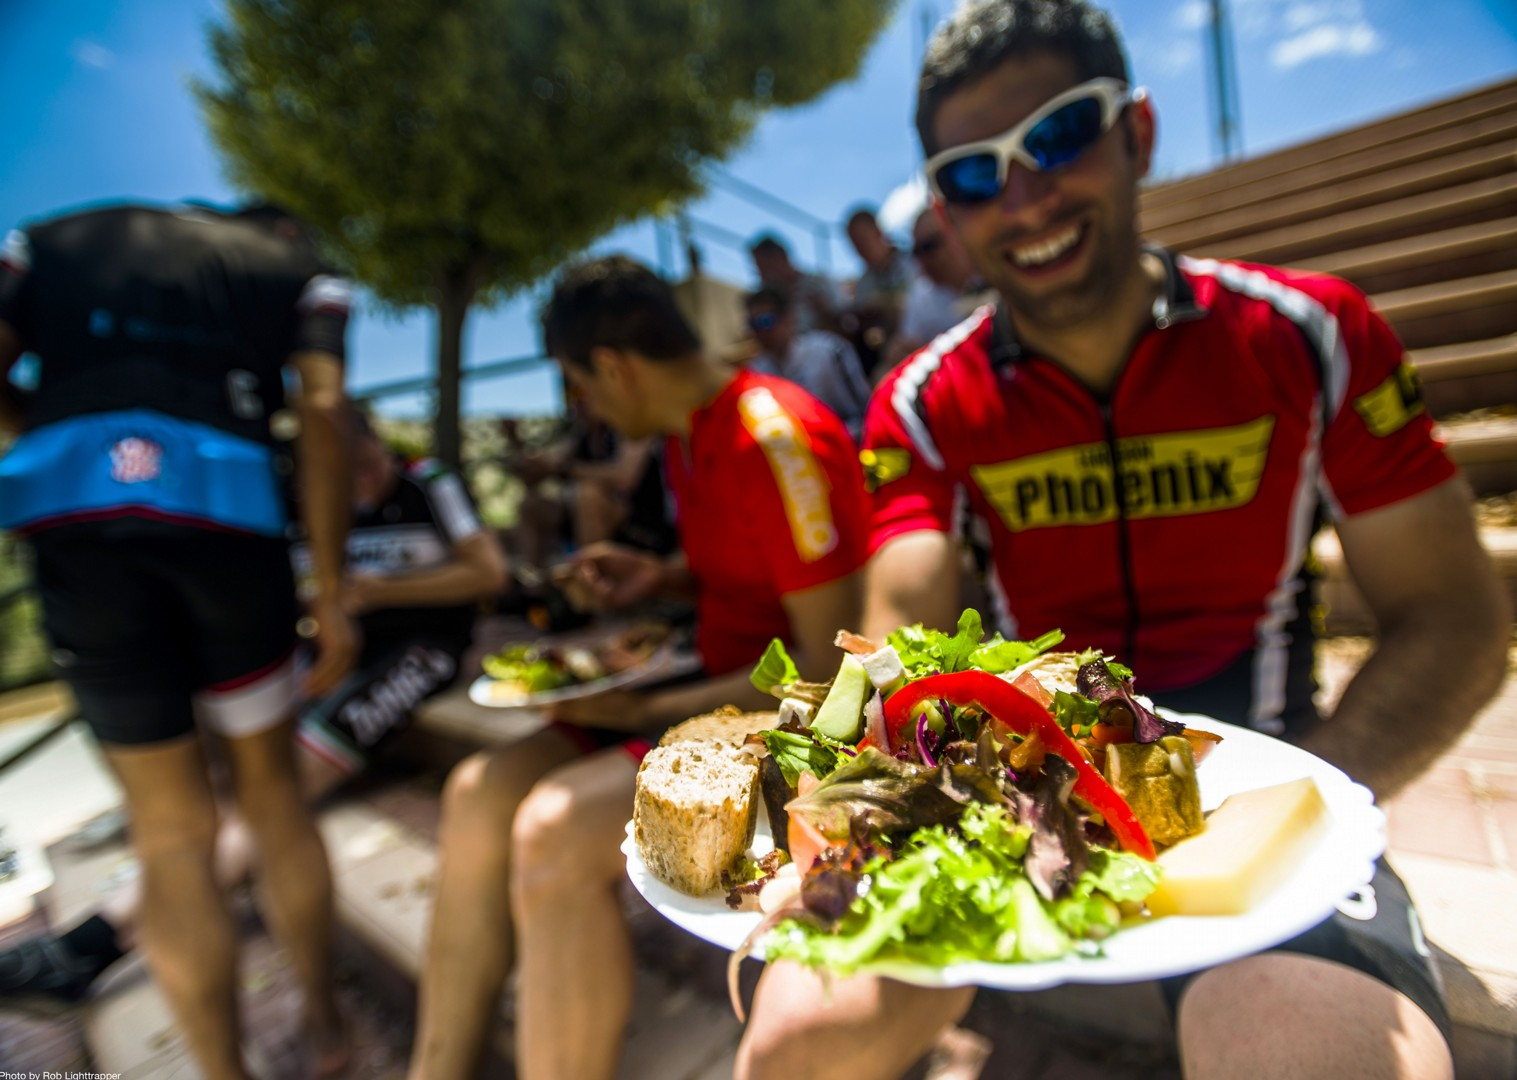 road-cycling-holiday-cape-to-cape-traverse-andalucia-spain-Mediterranean-food.jpg - Southern Spain - Andalucia - Cape to Cape Traverse - Guided Road Cycling Holiday - Road Cycling